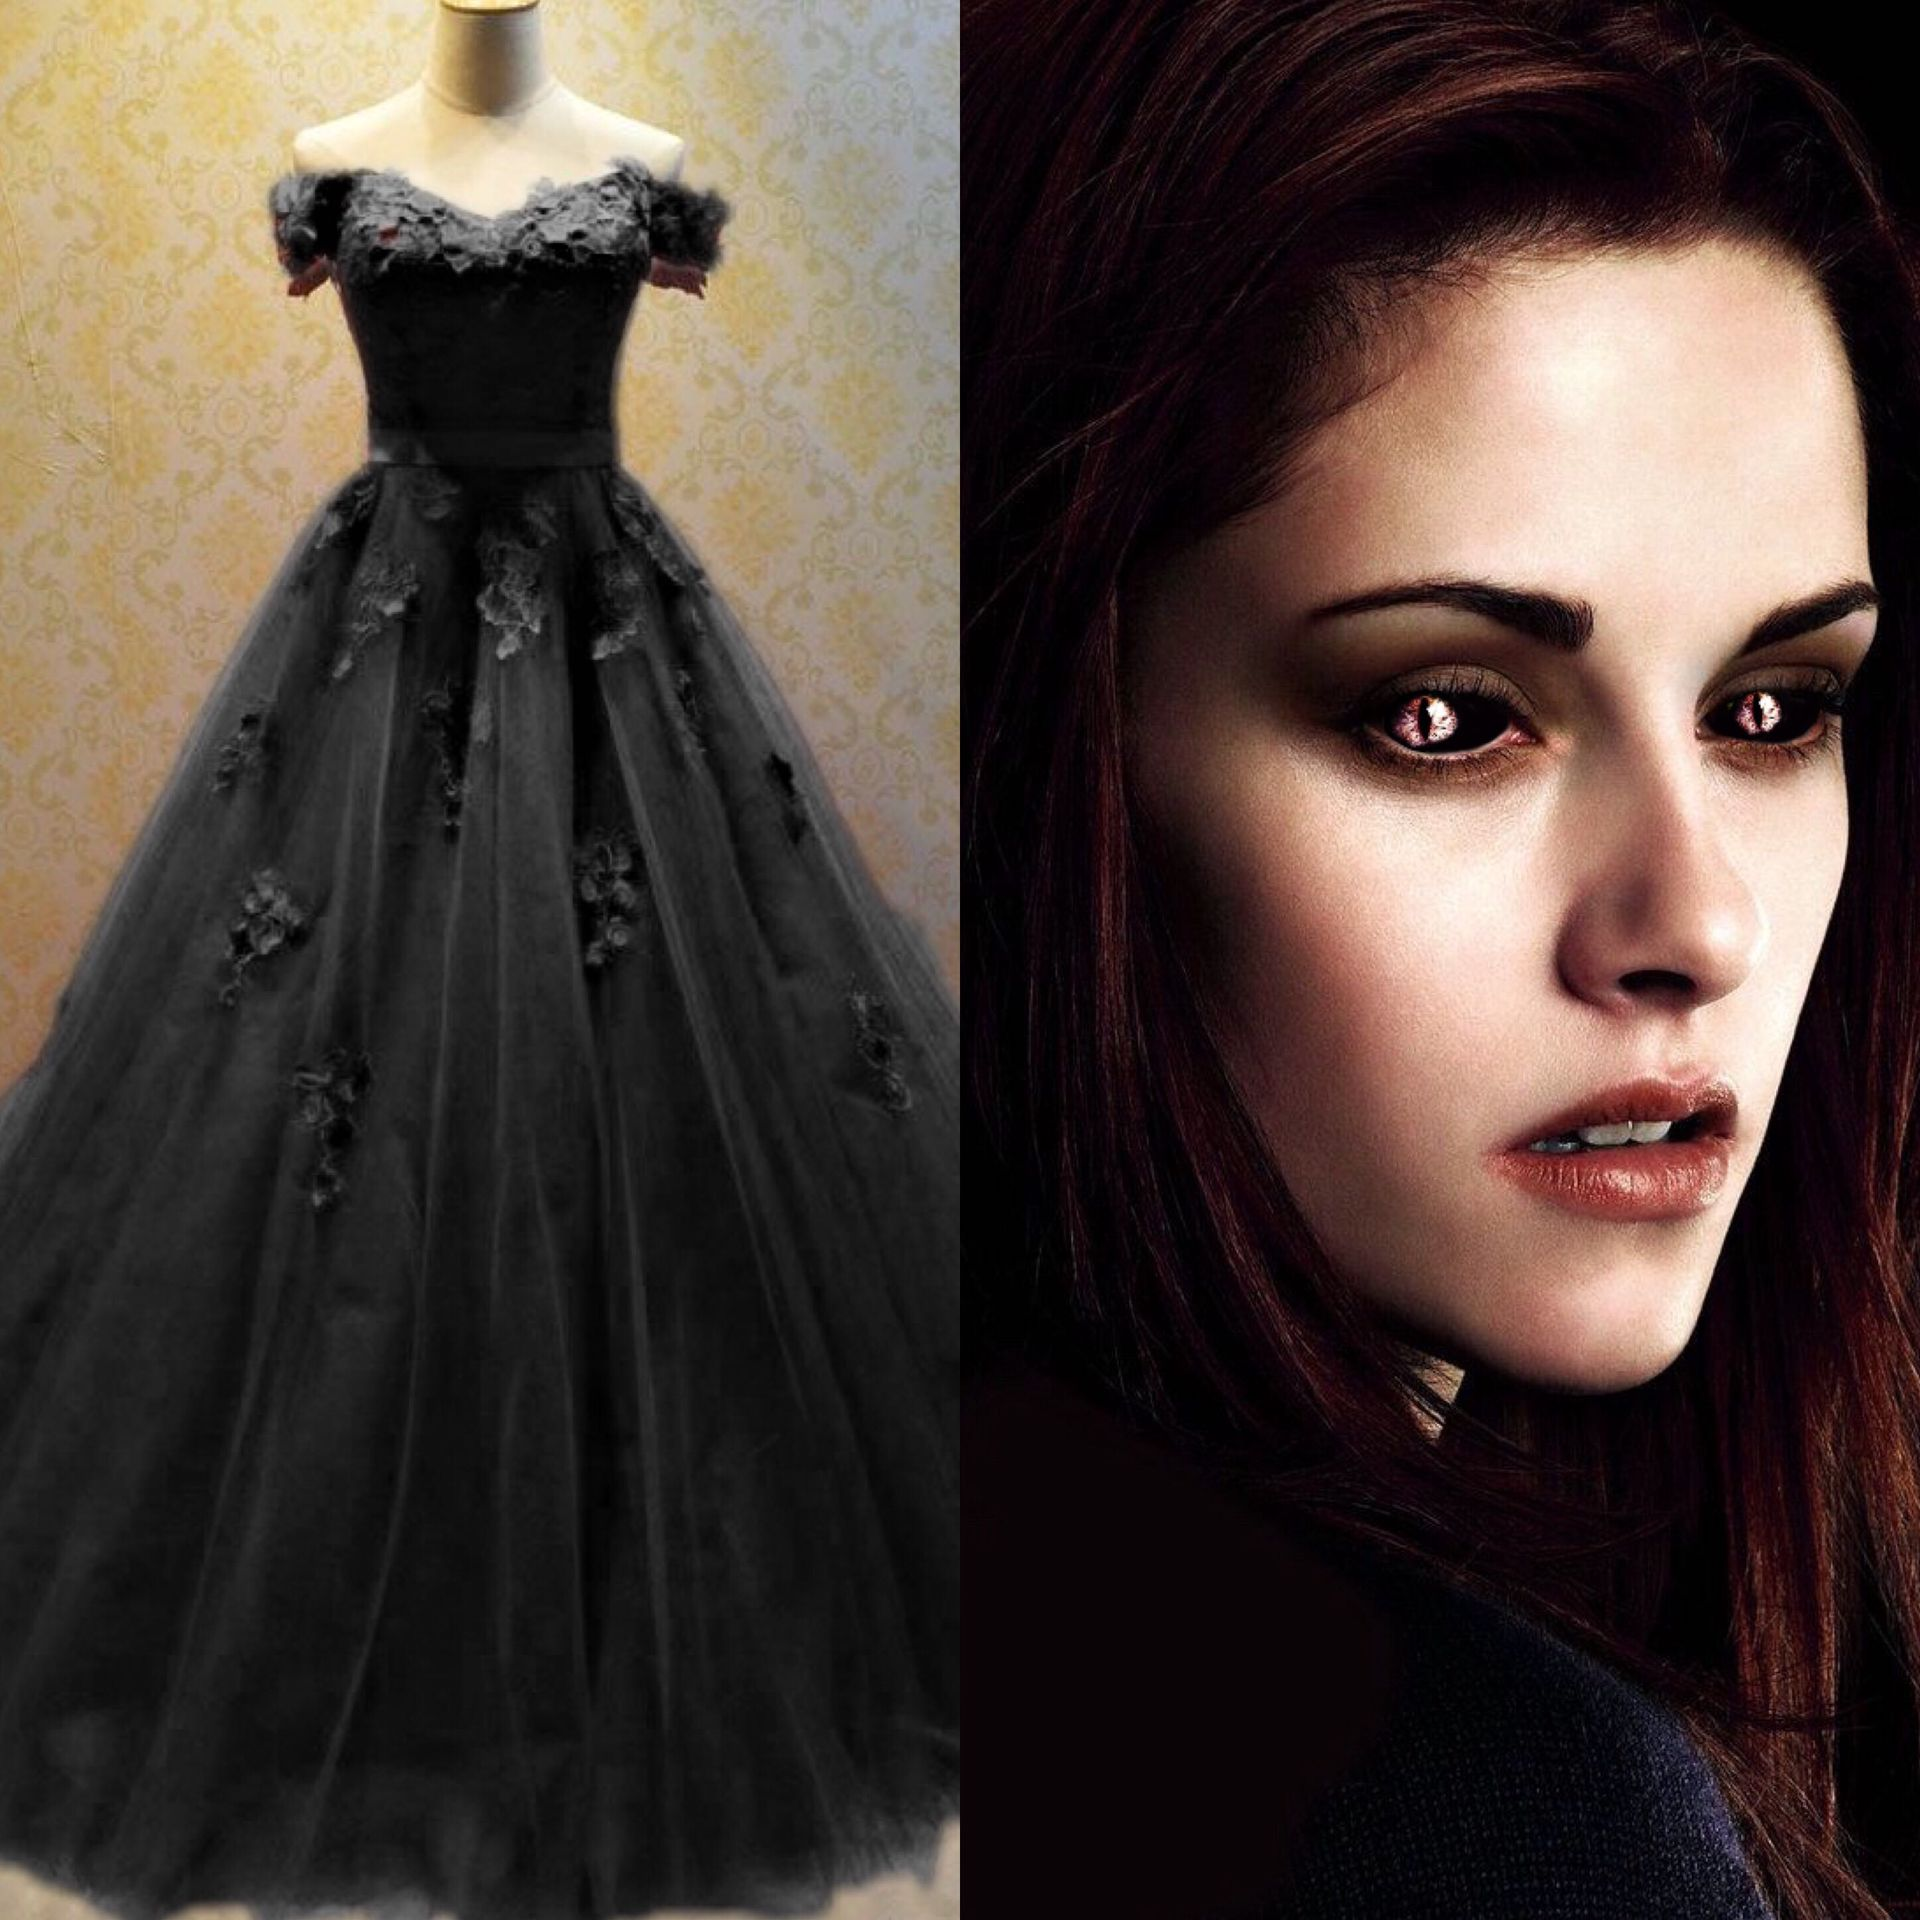 Pure Blood Goddess ( bella fanfic ) - Chapter 10: Confusions